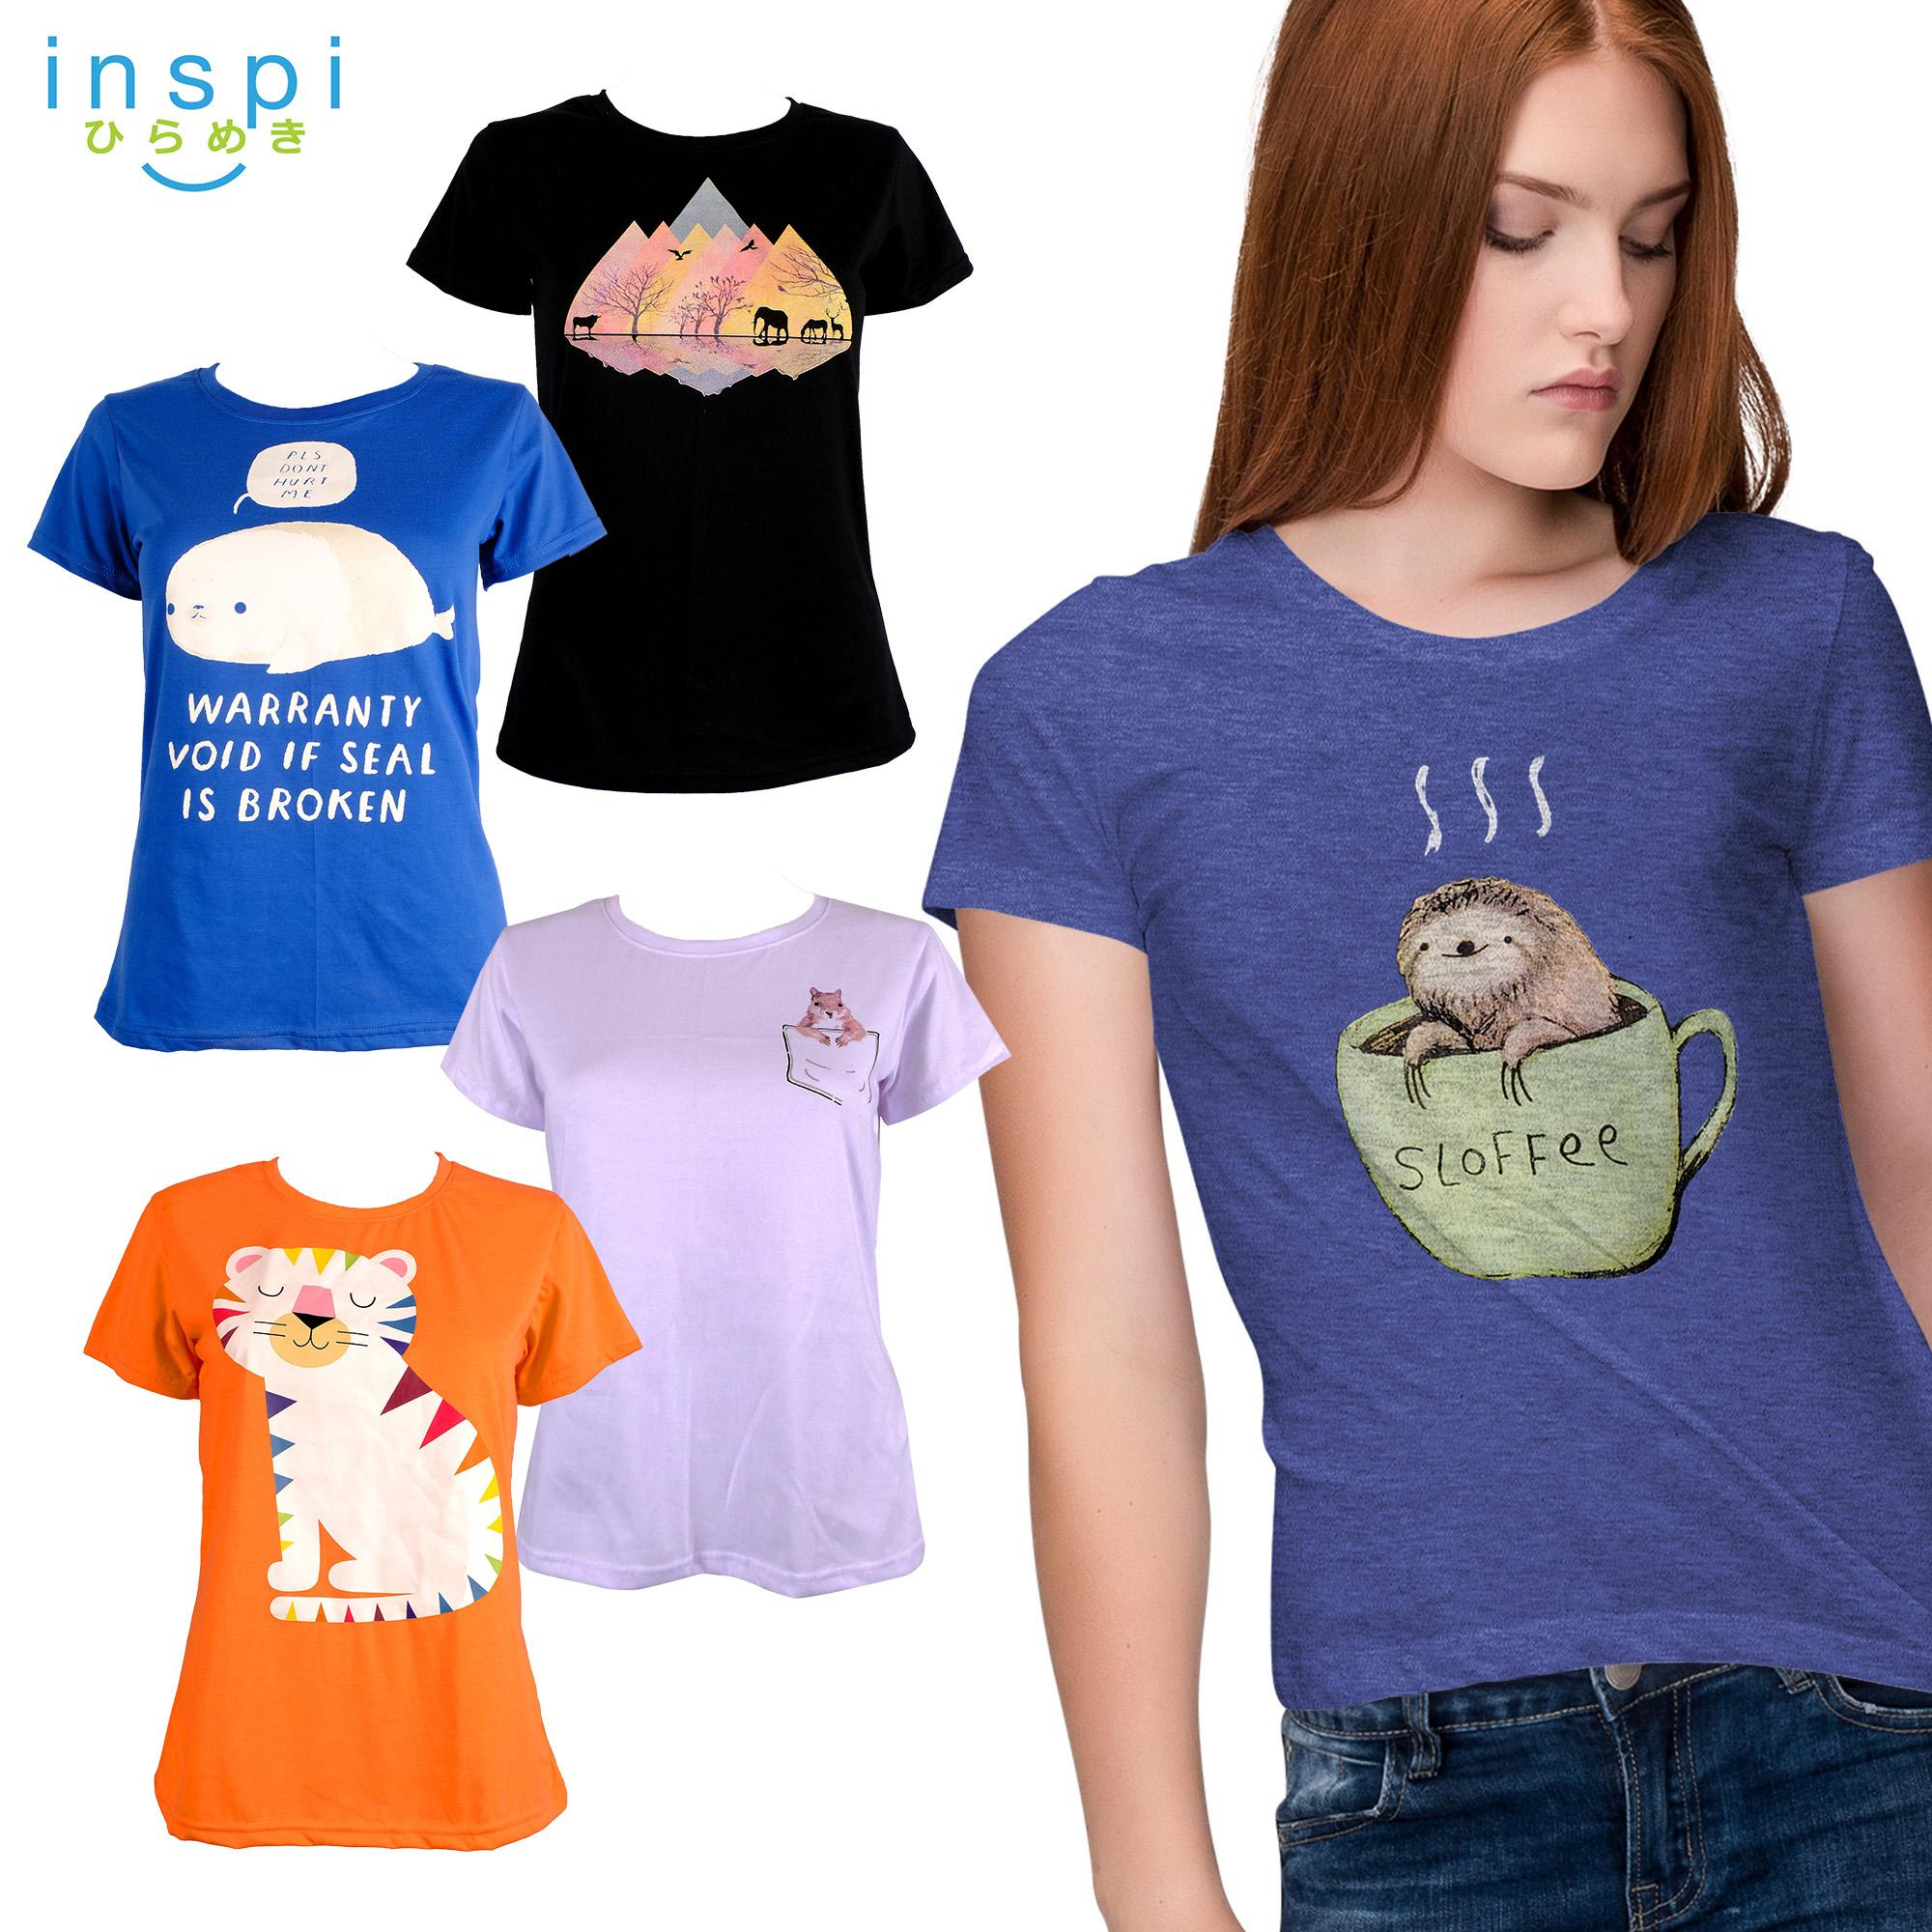 c588a40a8bb INSPI Tees Ladies Pet Collection tshirt printed graphic tee Ladies t shirt  shirts women tshirts for